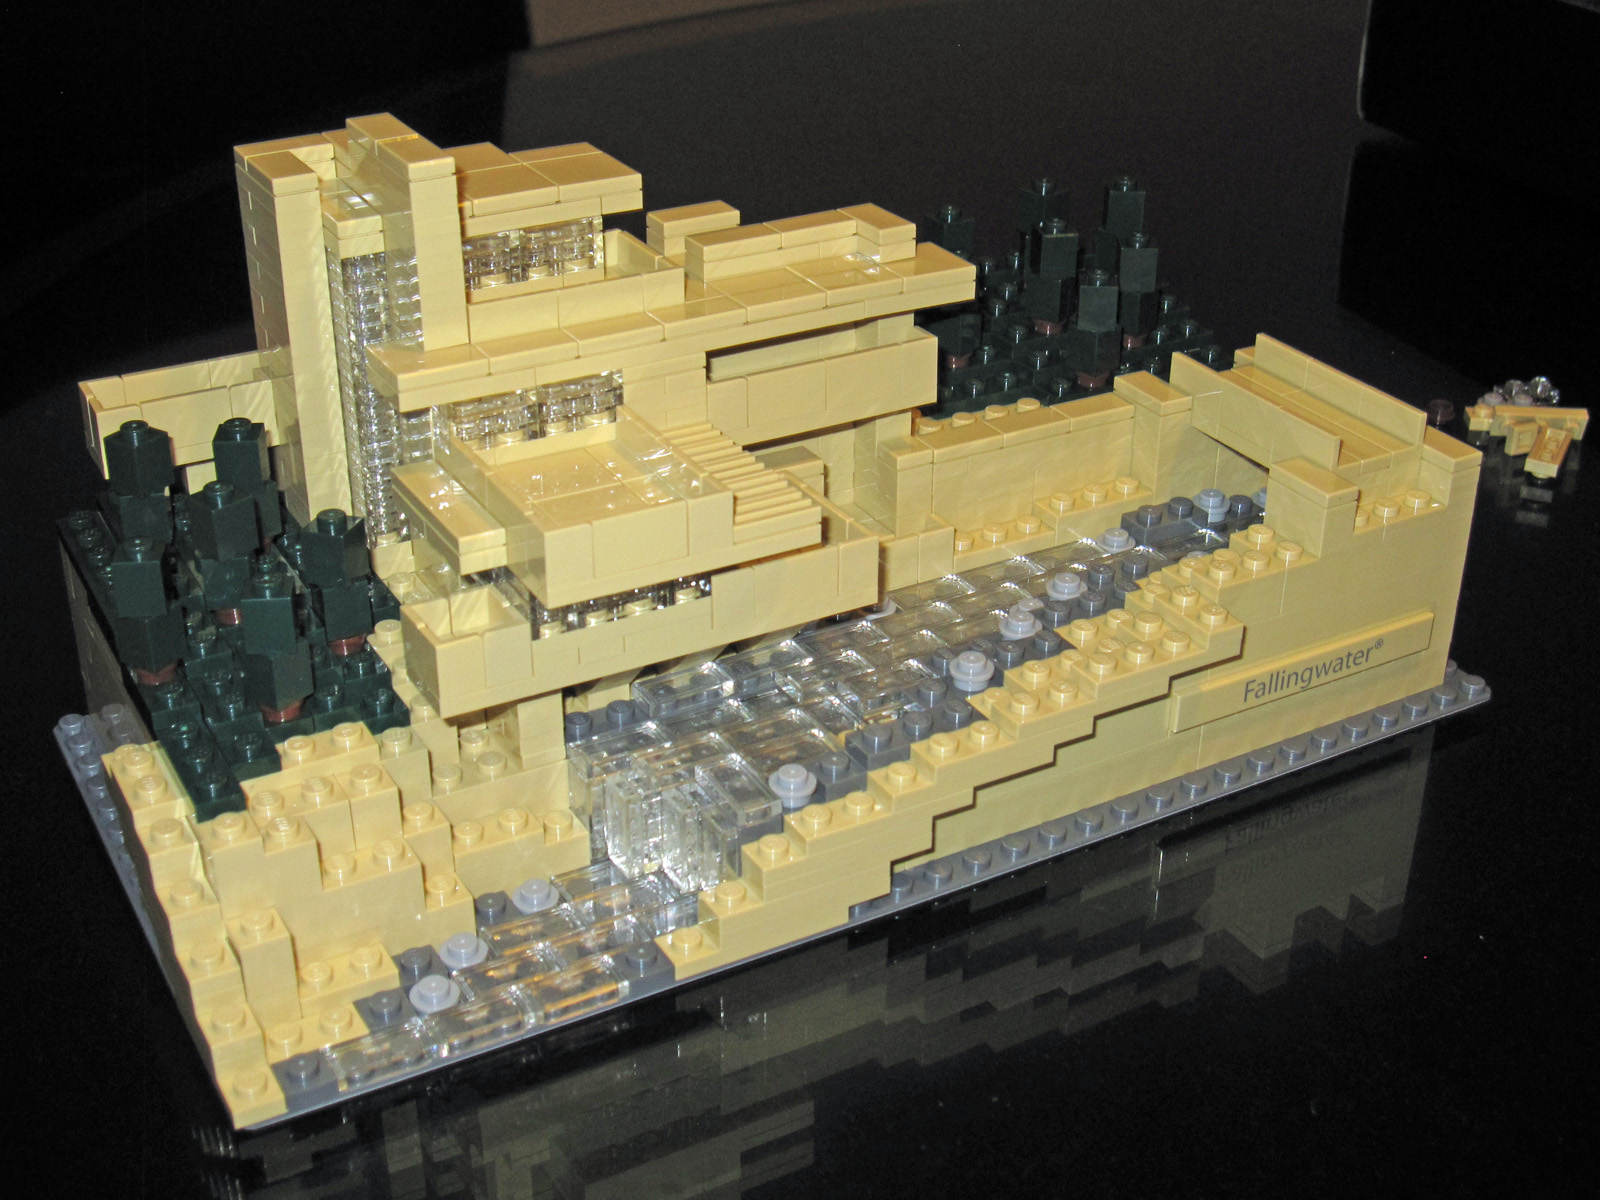 File lego architecture 21005 fallingwater 7331205756 jpg - Lego falling waters ...